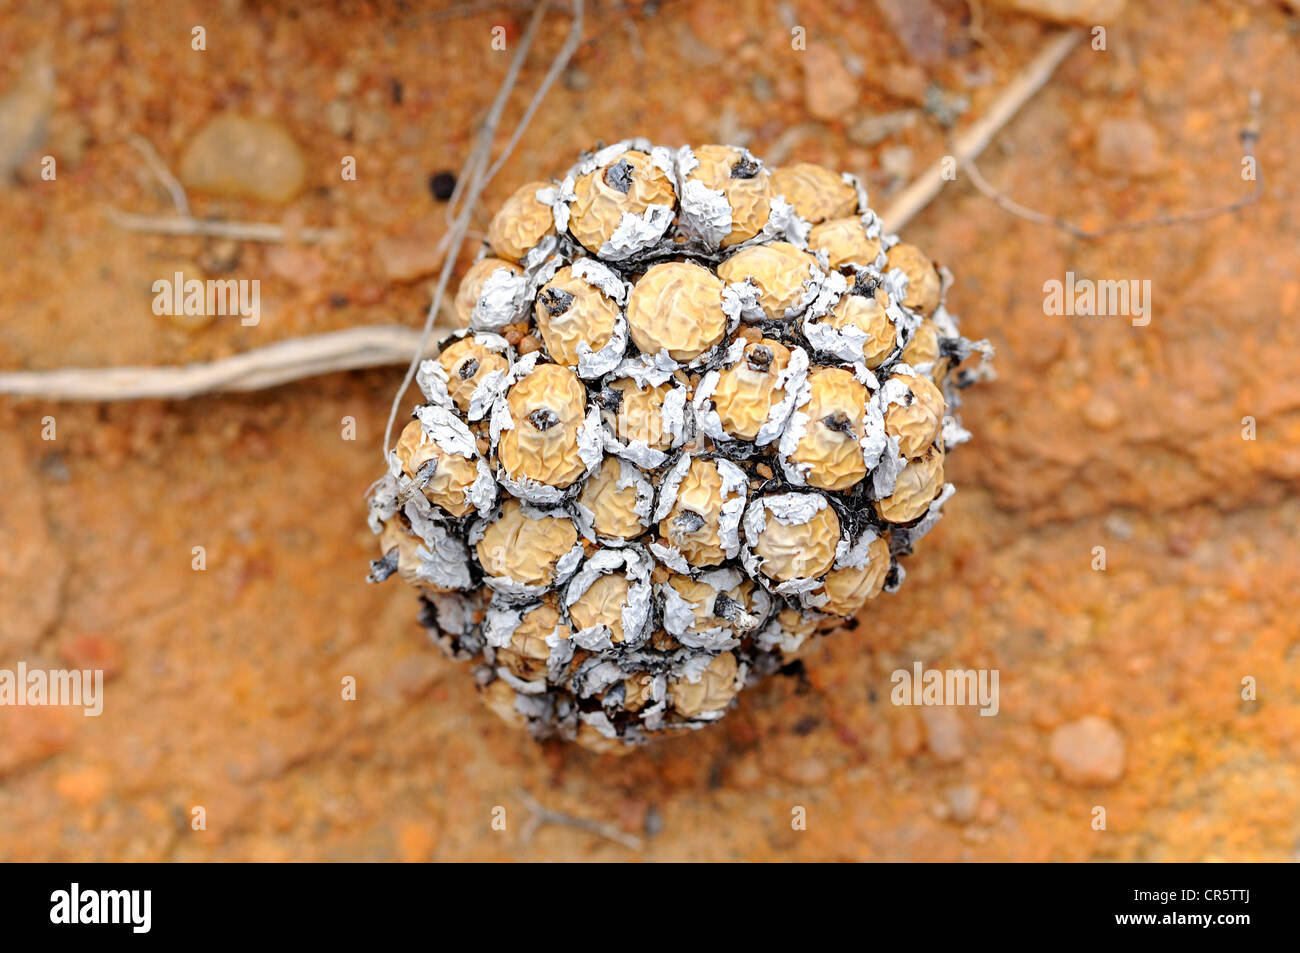 Conophytum sp. in dry season, Aizoaceae, Mesembs, Naries, Namaqualand, South Africa, Africa - Stock Image